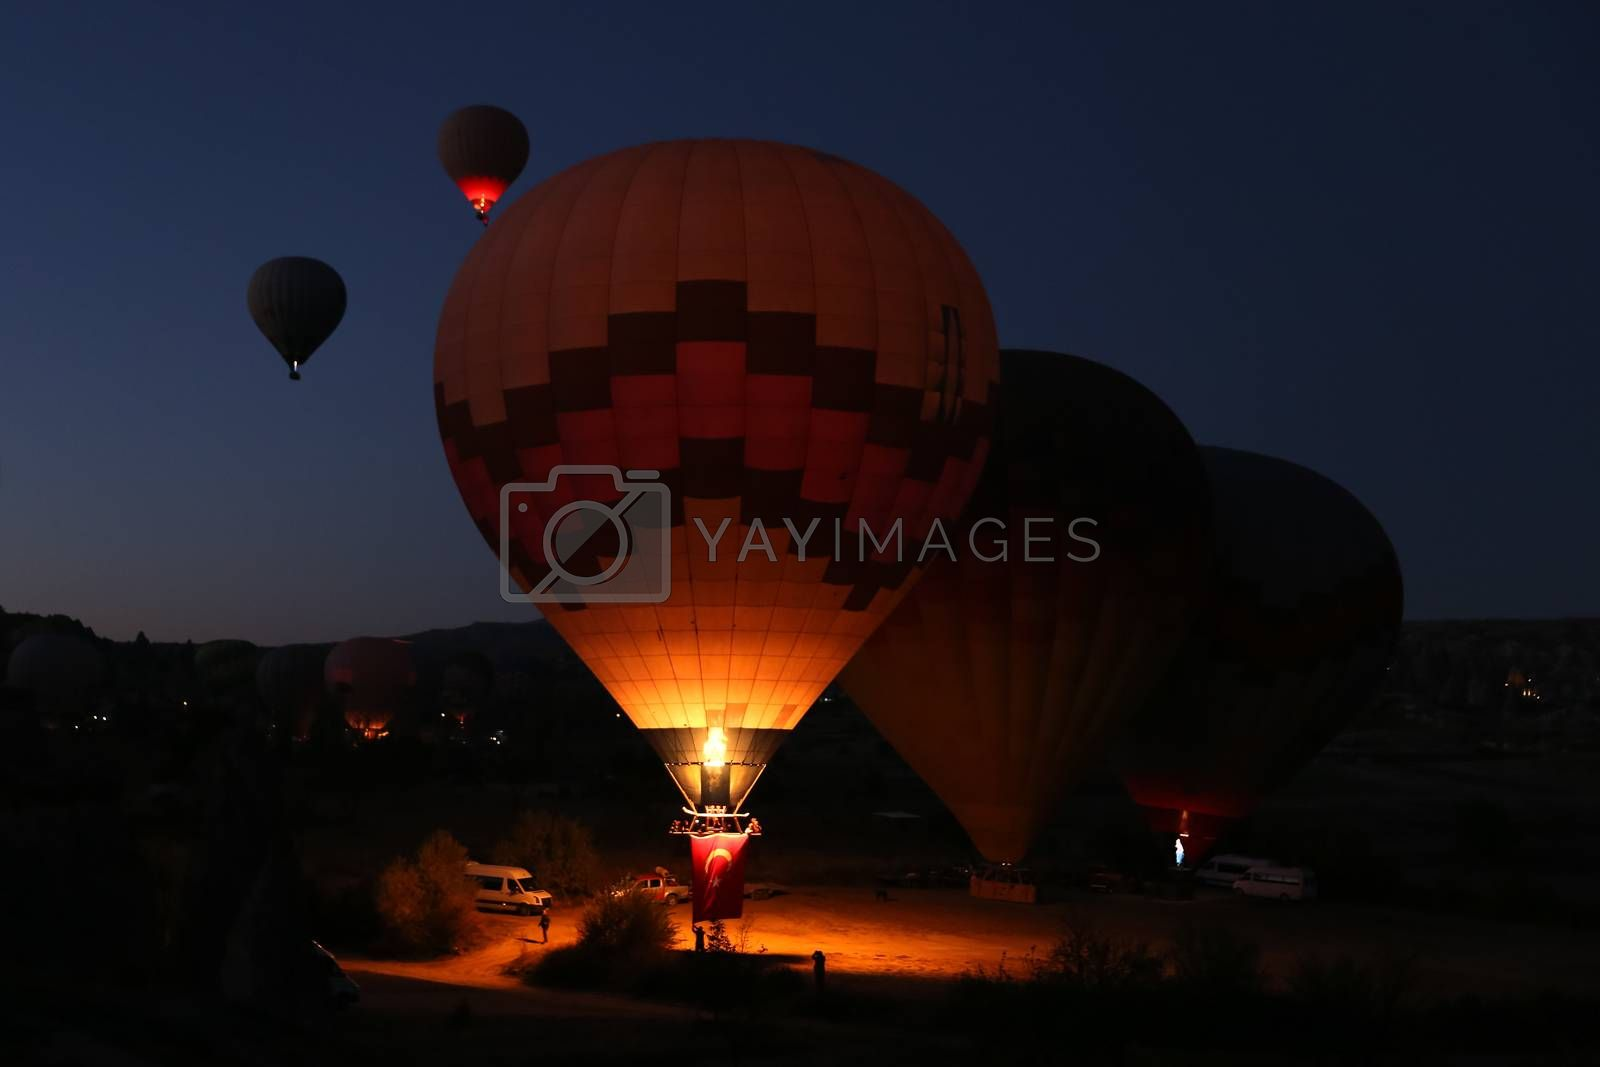 Hot Air Balloons by EvrenKalinbacak